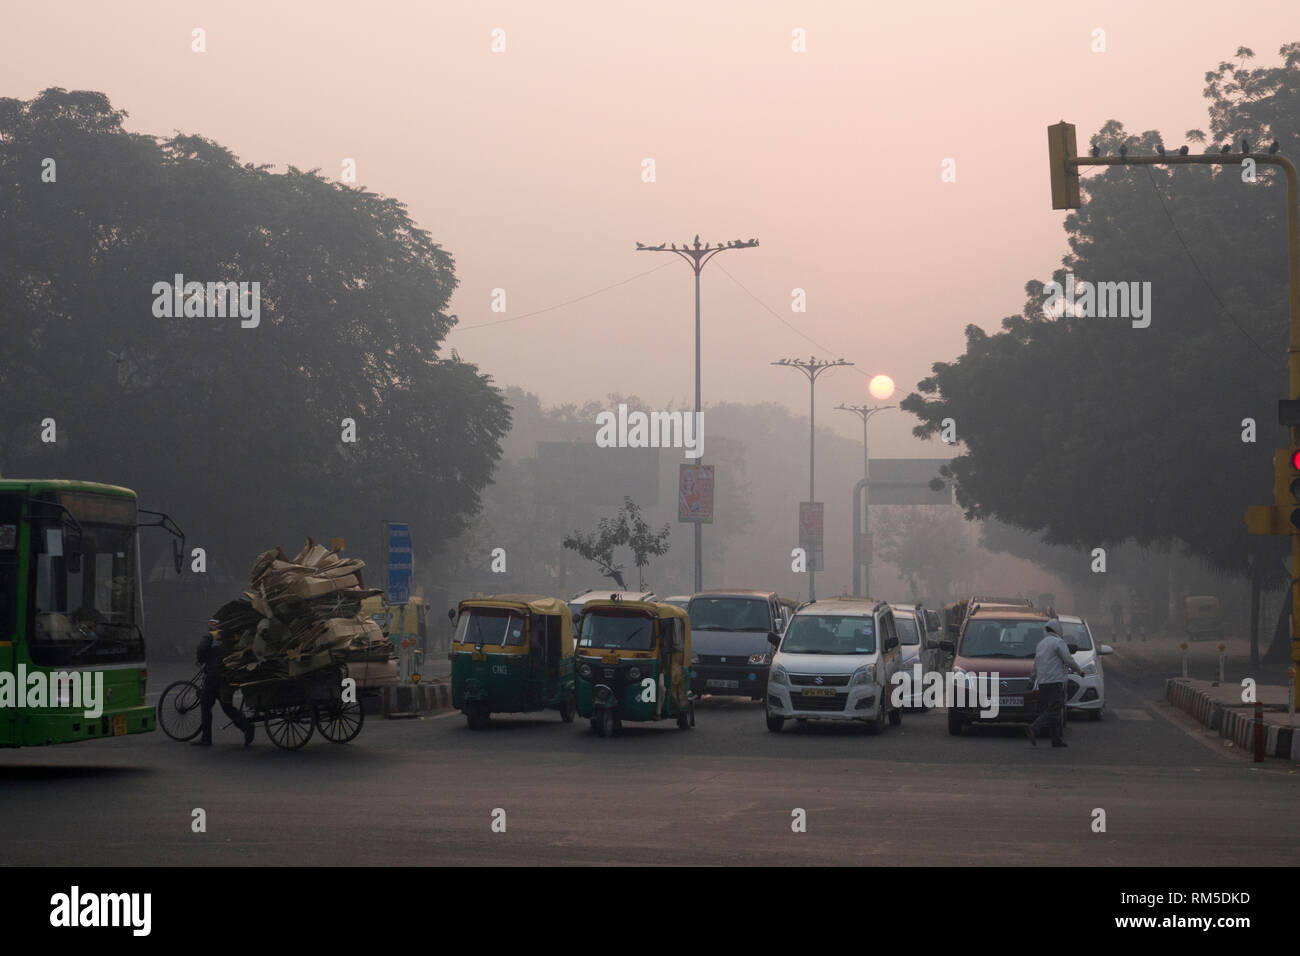 Commuters in hazardous levels of air pollution in Connaught Place, New Delhi, India - Stock Image